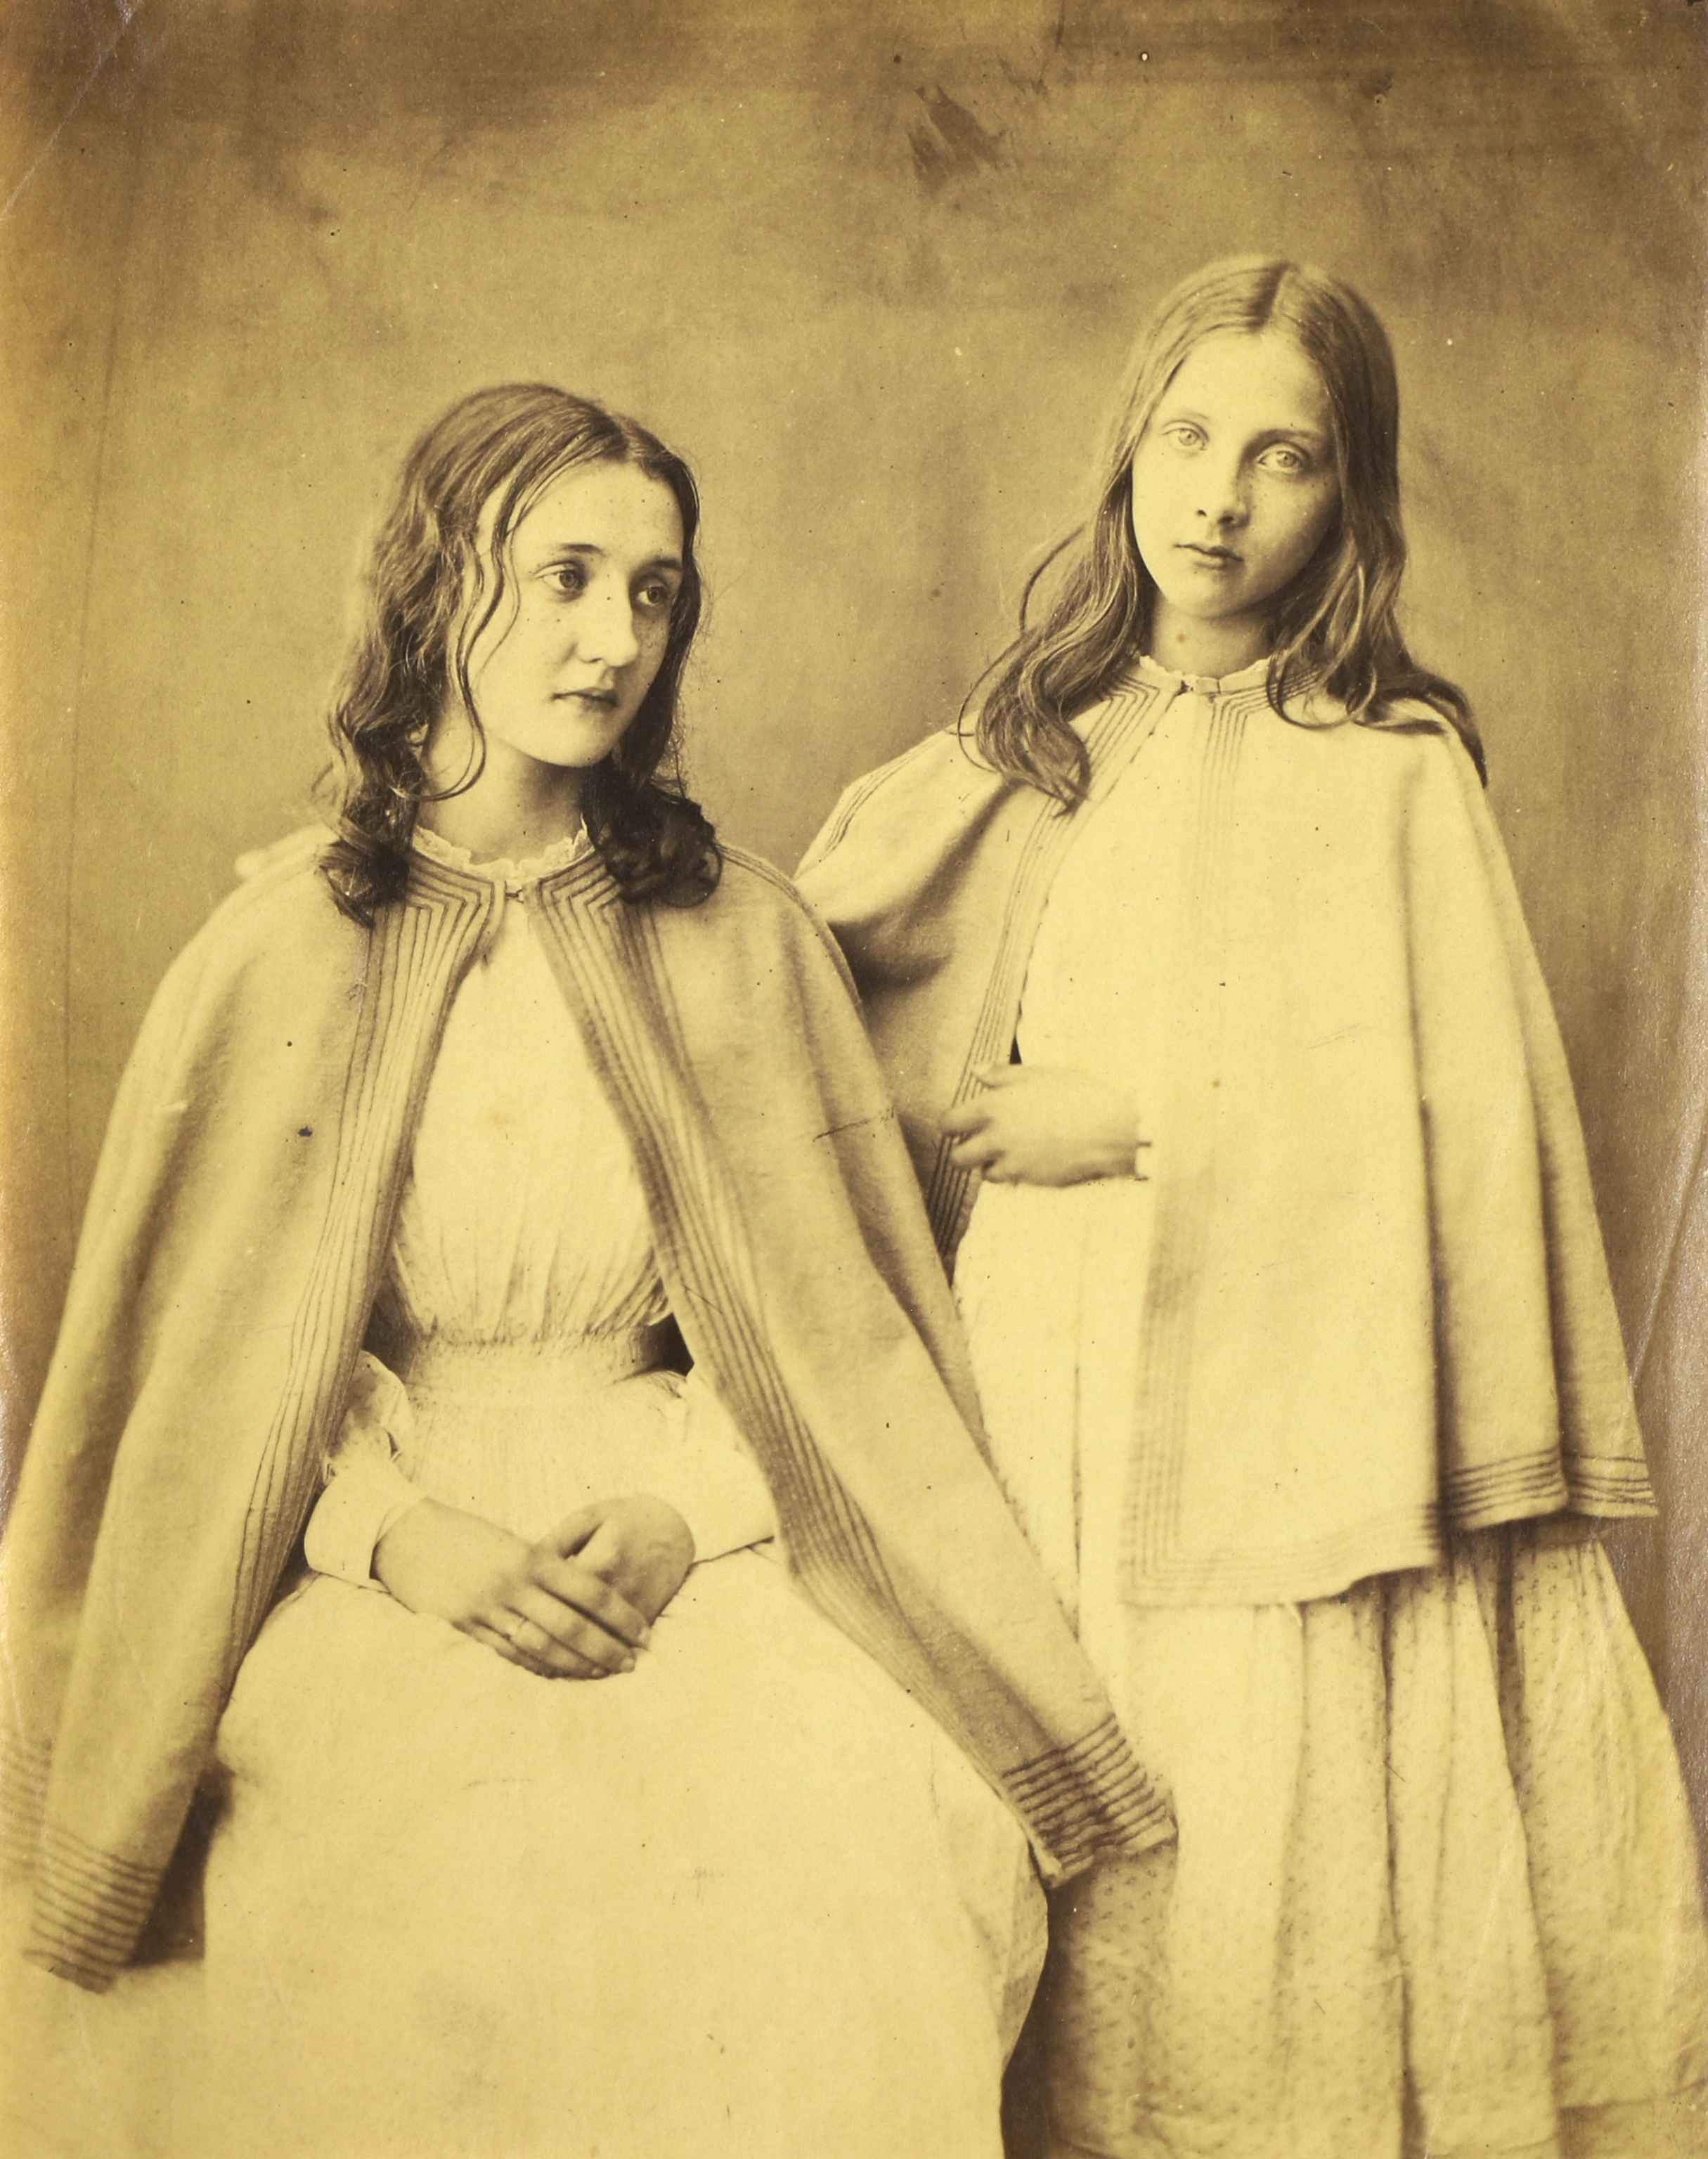 Julia Prinsep Stephen photographs at Sworders